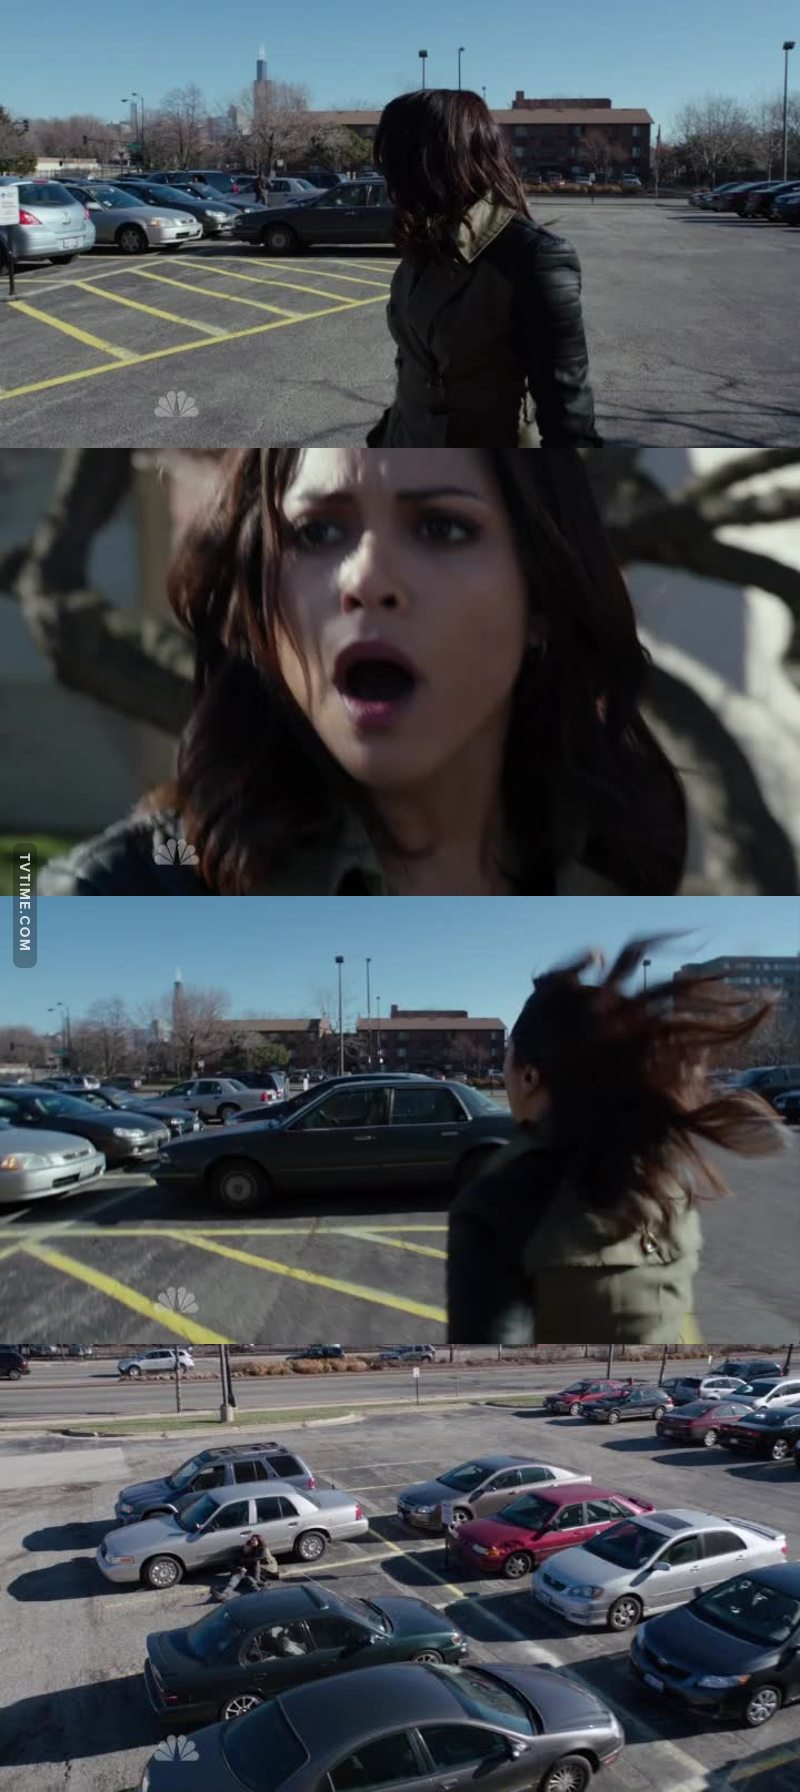 When I saw the car. I learned that